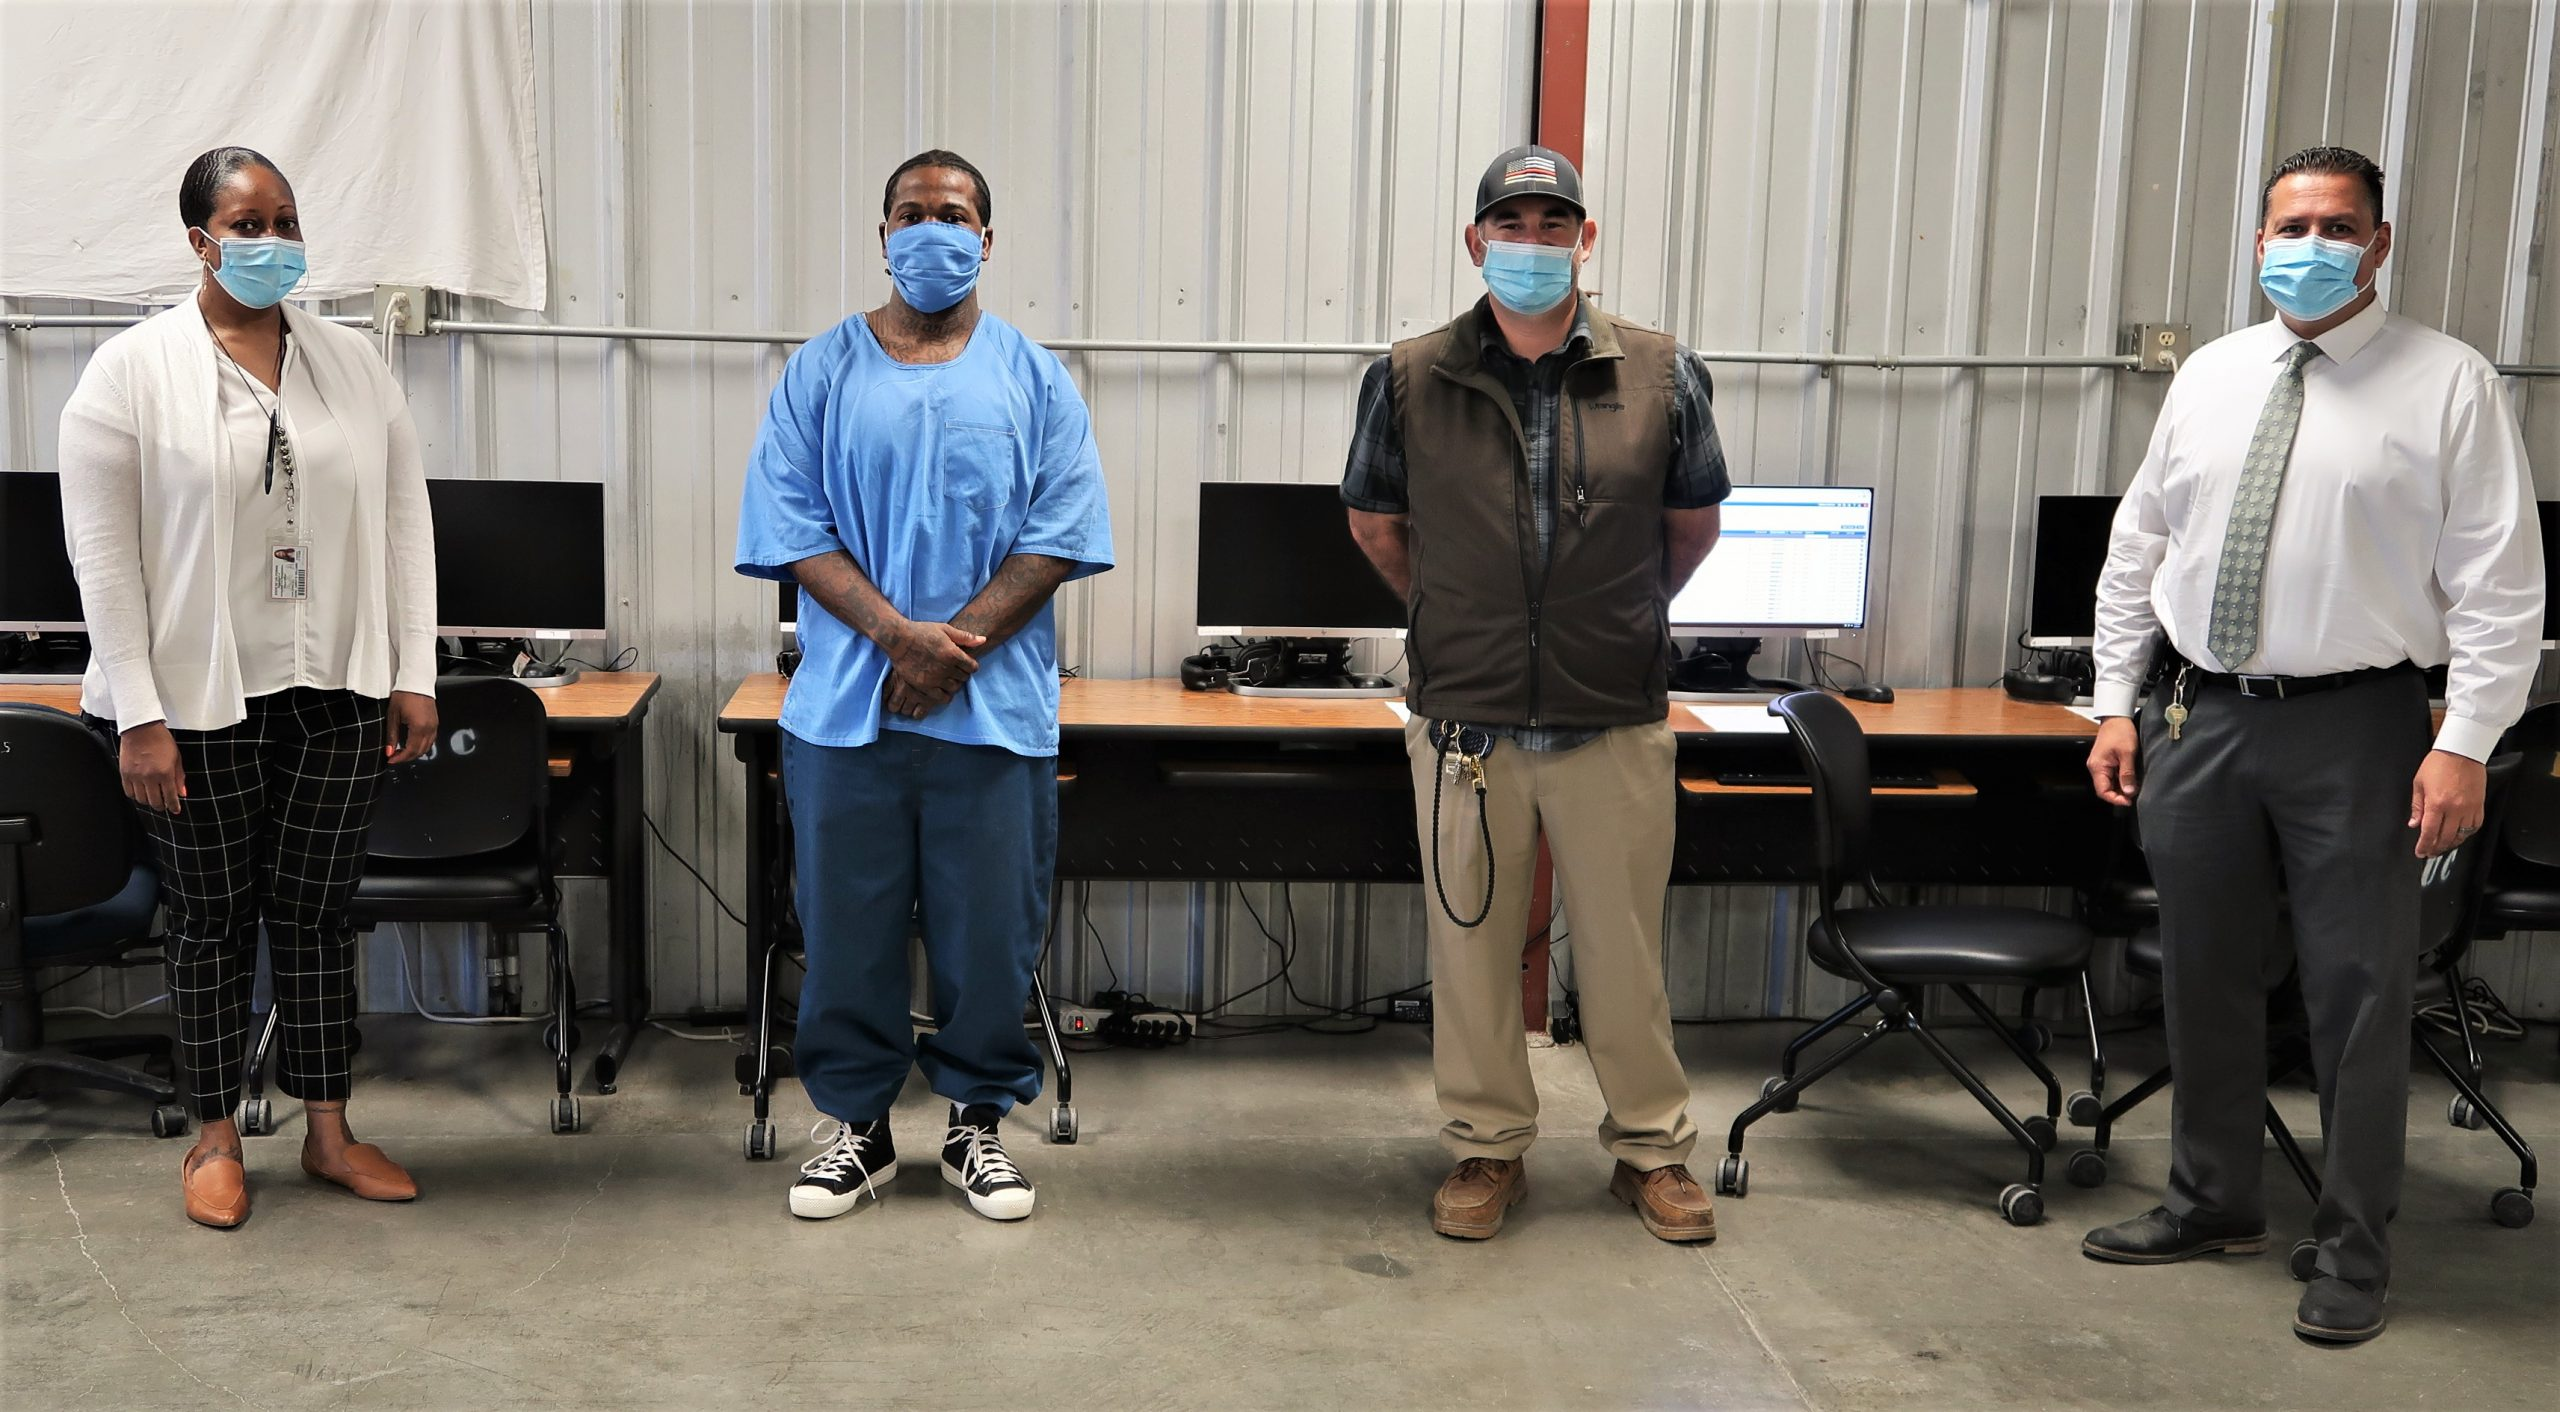 A Cyber High student and staff at Avenal State Prison stand in front of computers.